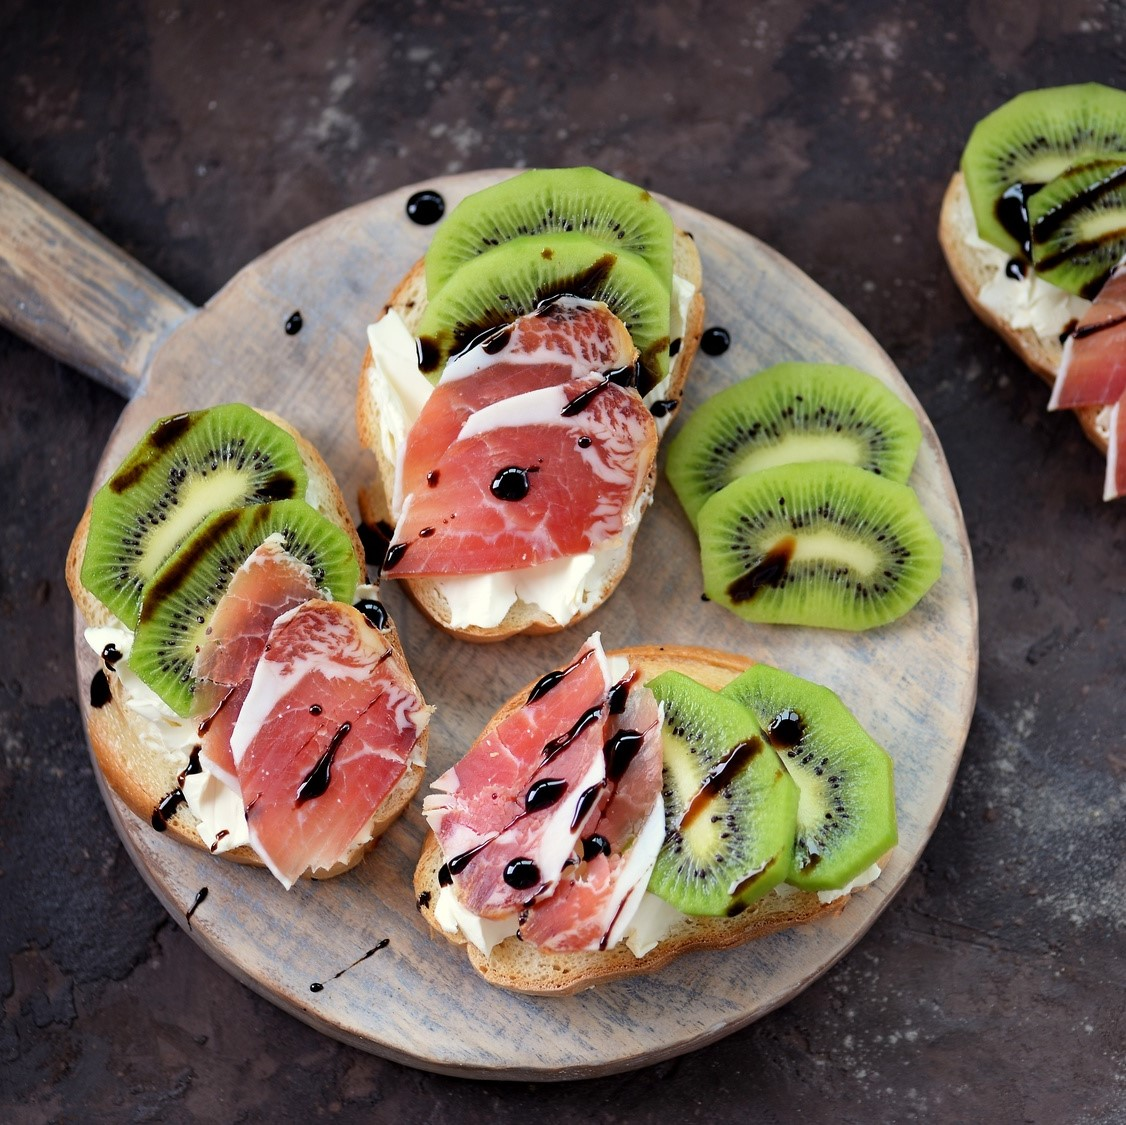 Oscar® kiwi fruits and raw ham toasts